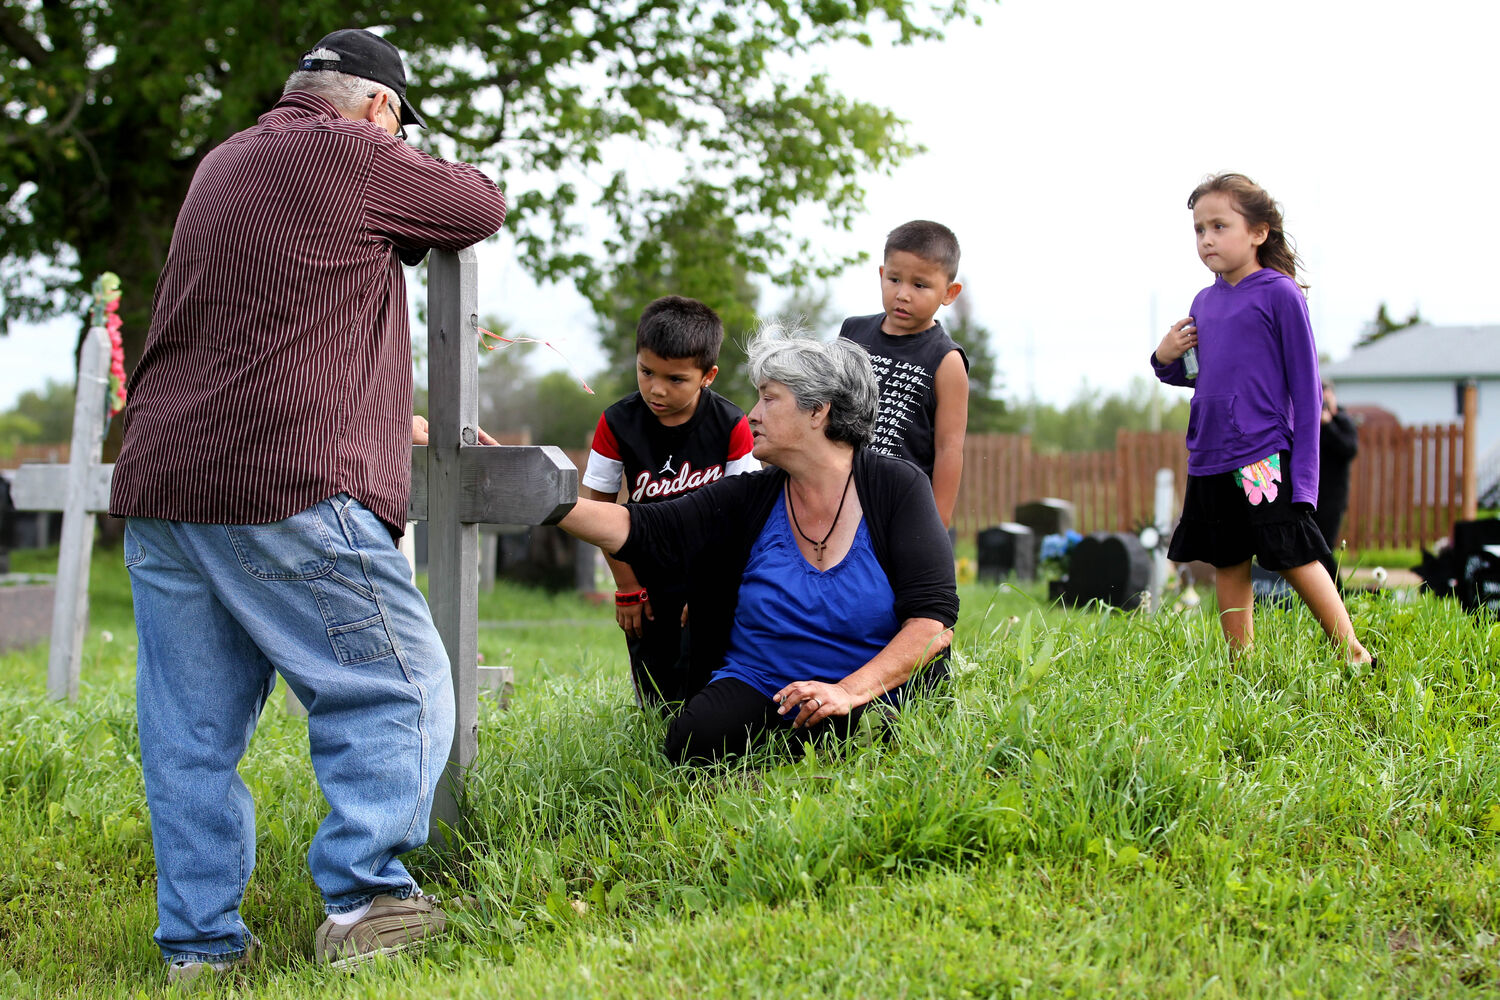 After the funeral for Tina Fontaine Saturday in Sagkeeng First Nation her grandmother, Thelma Favel, sat at the grave site of Tina's father, Eugene Robert Fontaine, the same site Tina Fontaine will be laid to rest in the coming days. Favel broke down into tears while begging her nephew's forgiveness for the death of Tina.  (Ruth Bonneville / The Winnipeg Free Press)